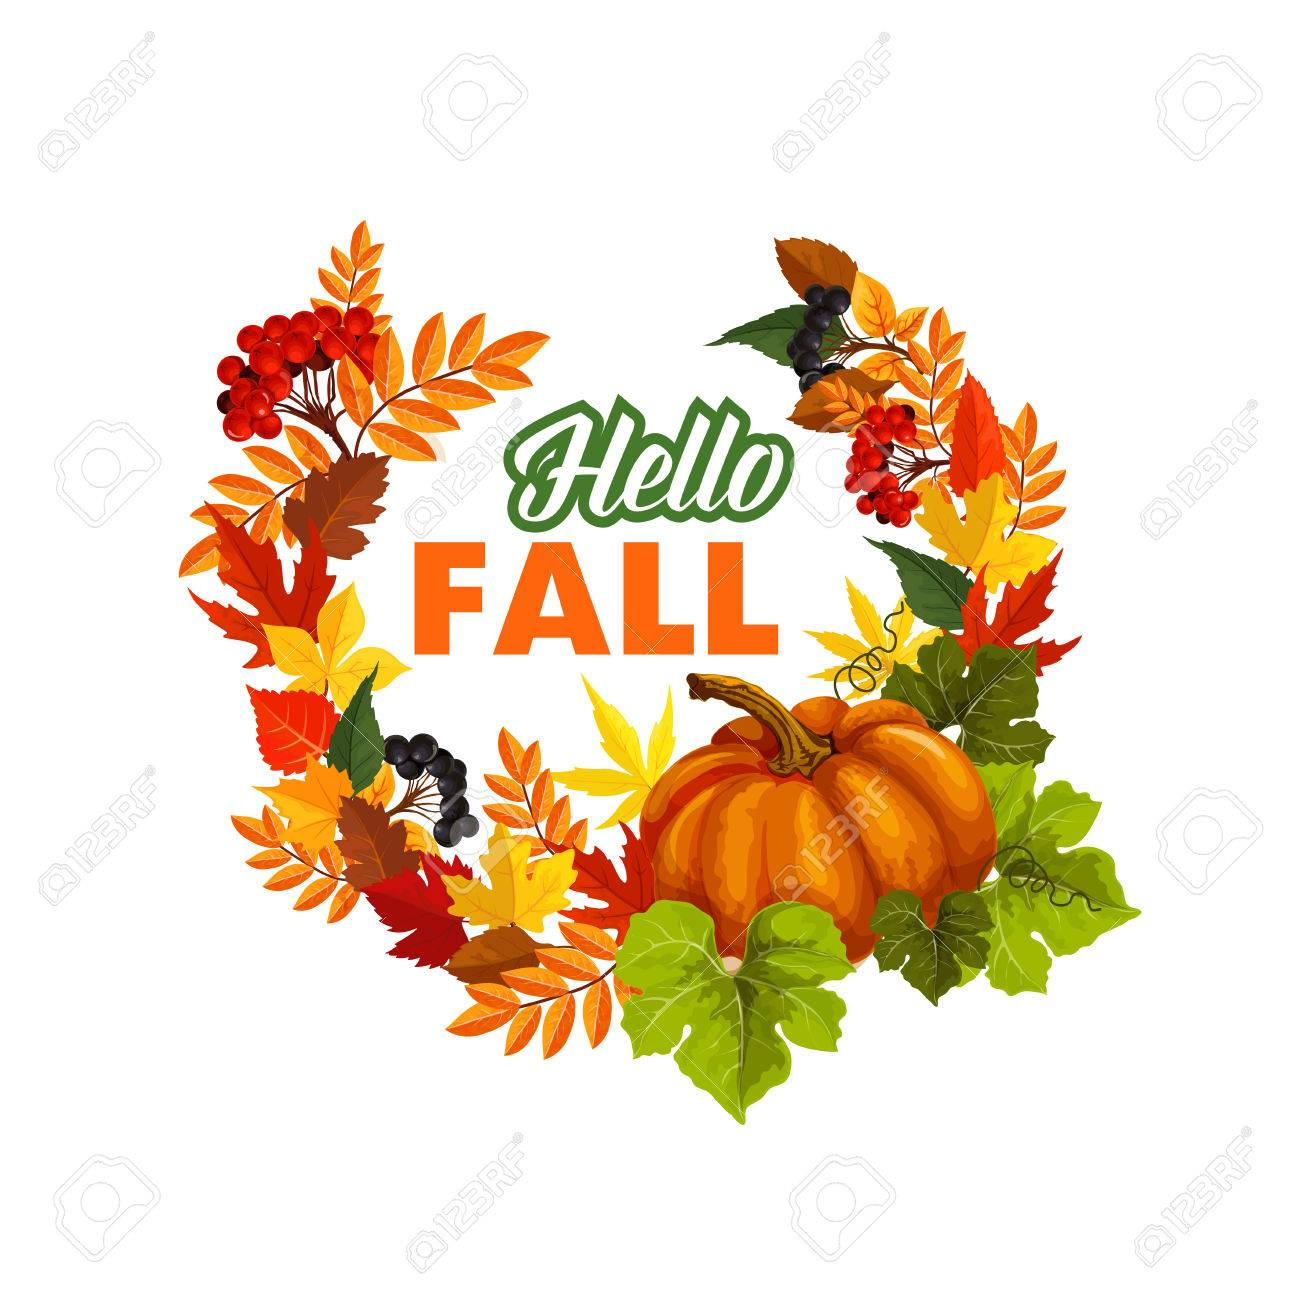 Superior Autumn Seasonal Greeting Card Of Hello Fall Quote And Pumpkin Or Rowan  Berry Harvest On Foliage